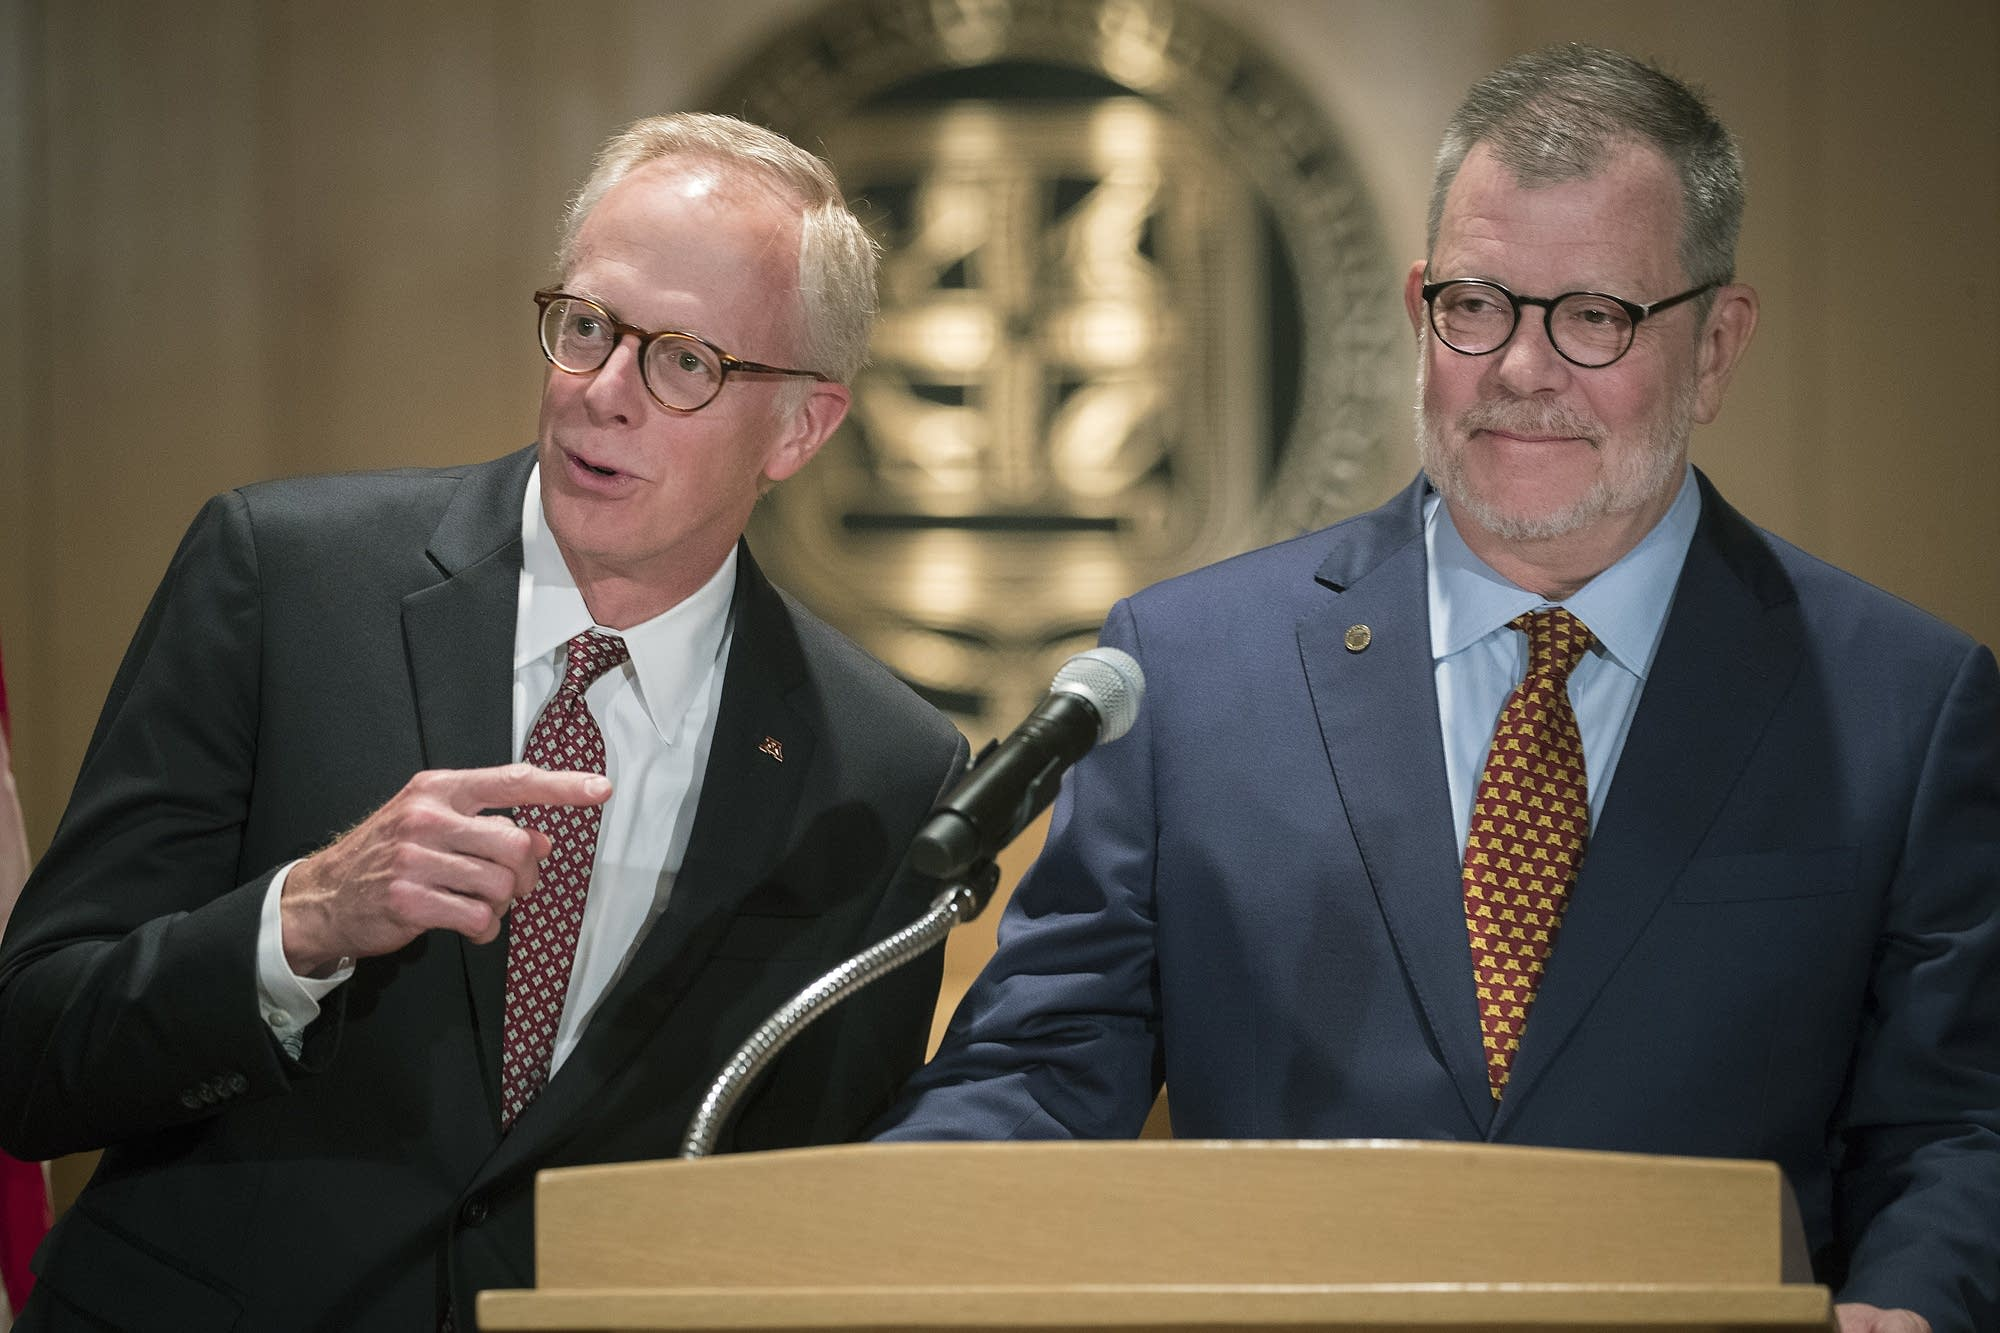 David McMillan, chair of the Board of Regents, left, and U pres. Eric Kaler